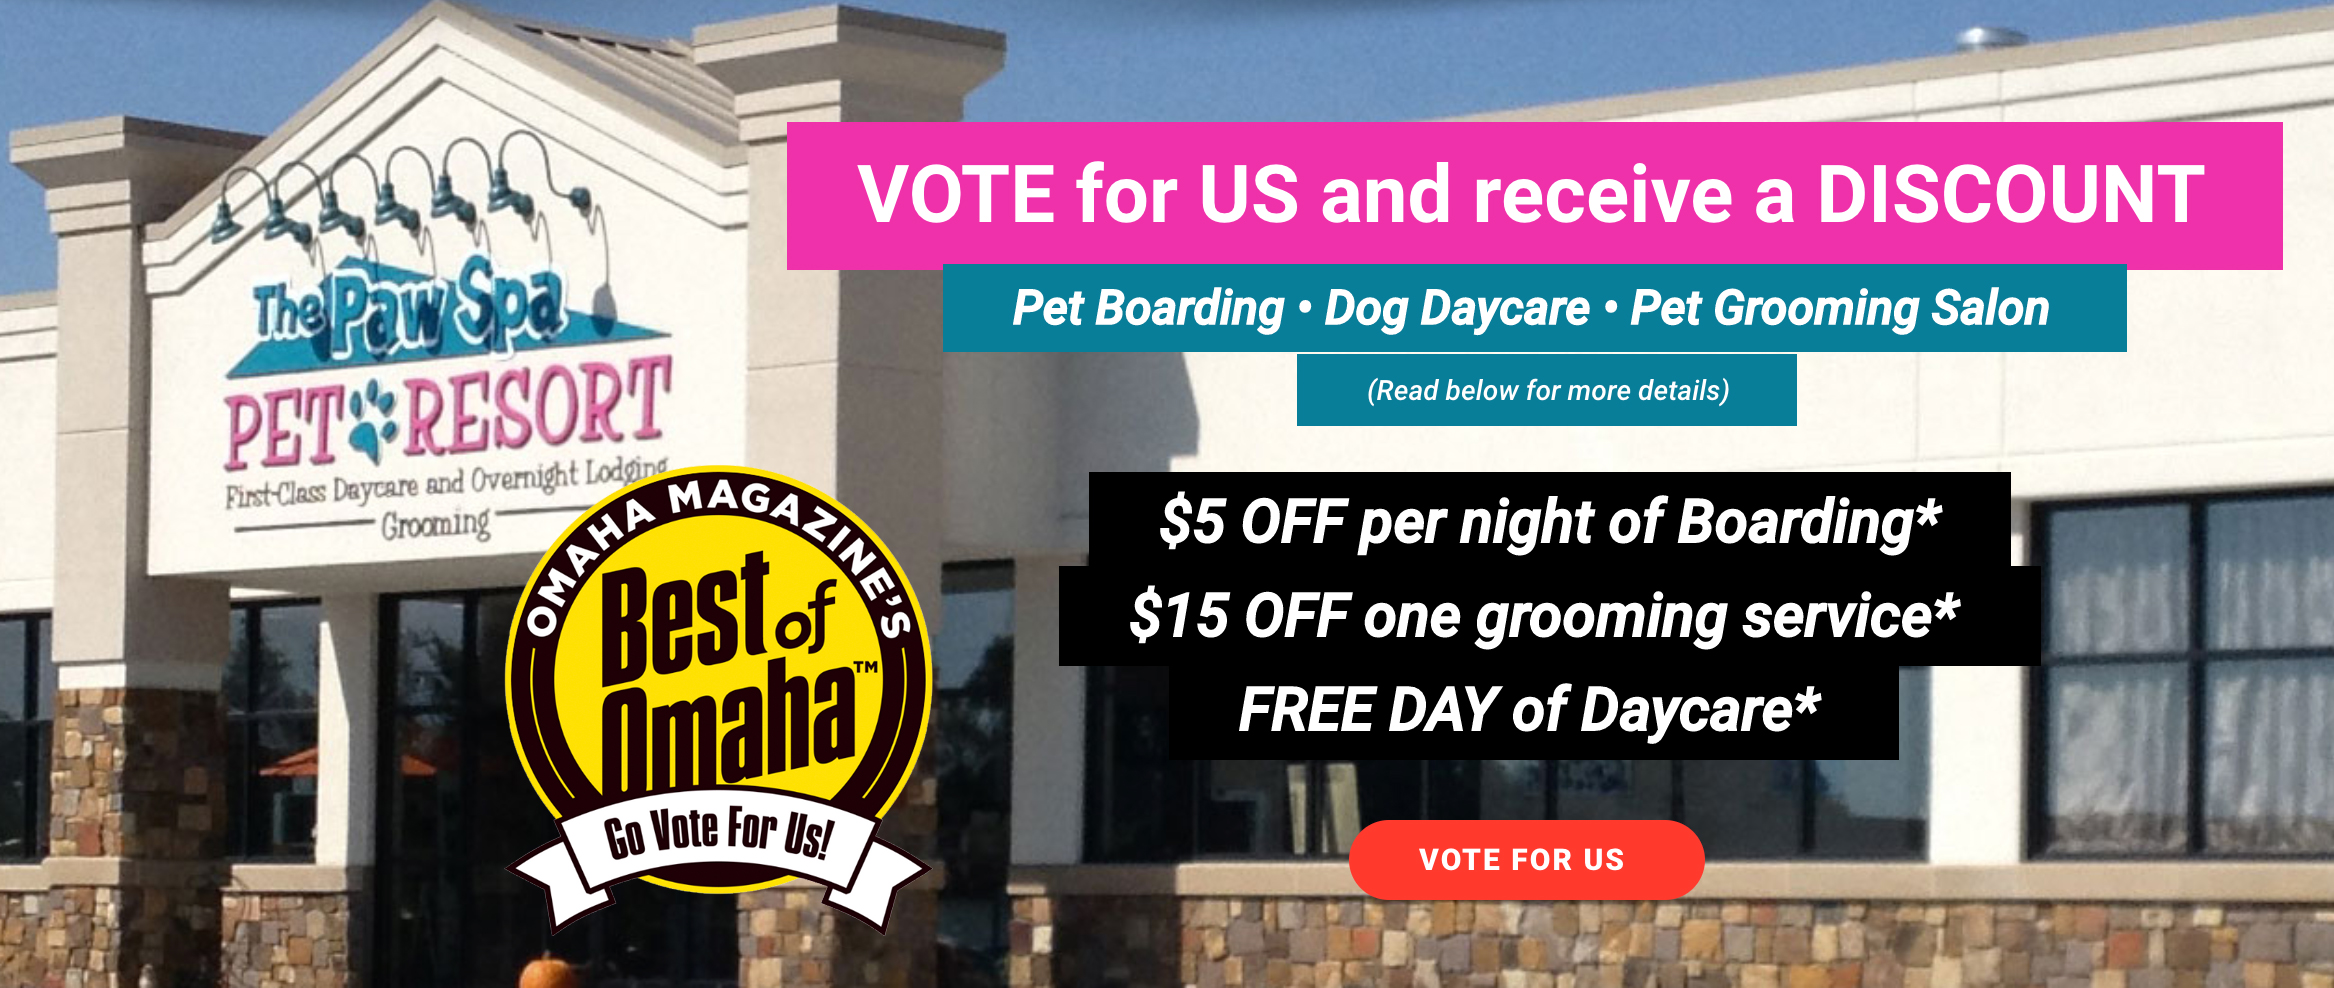 vote Paw Spa for Best of Omaha